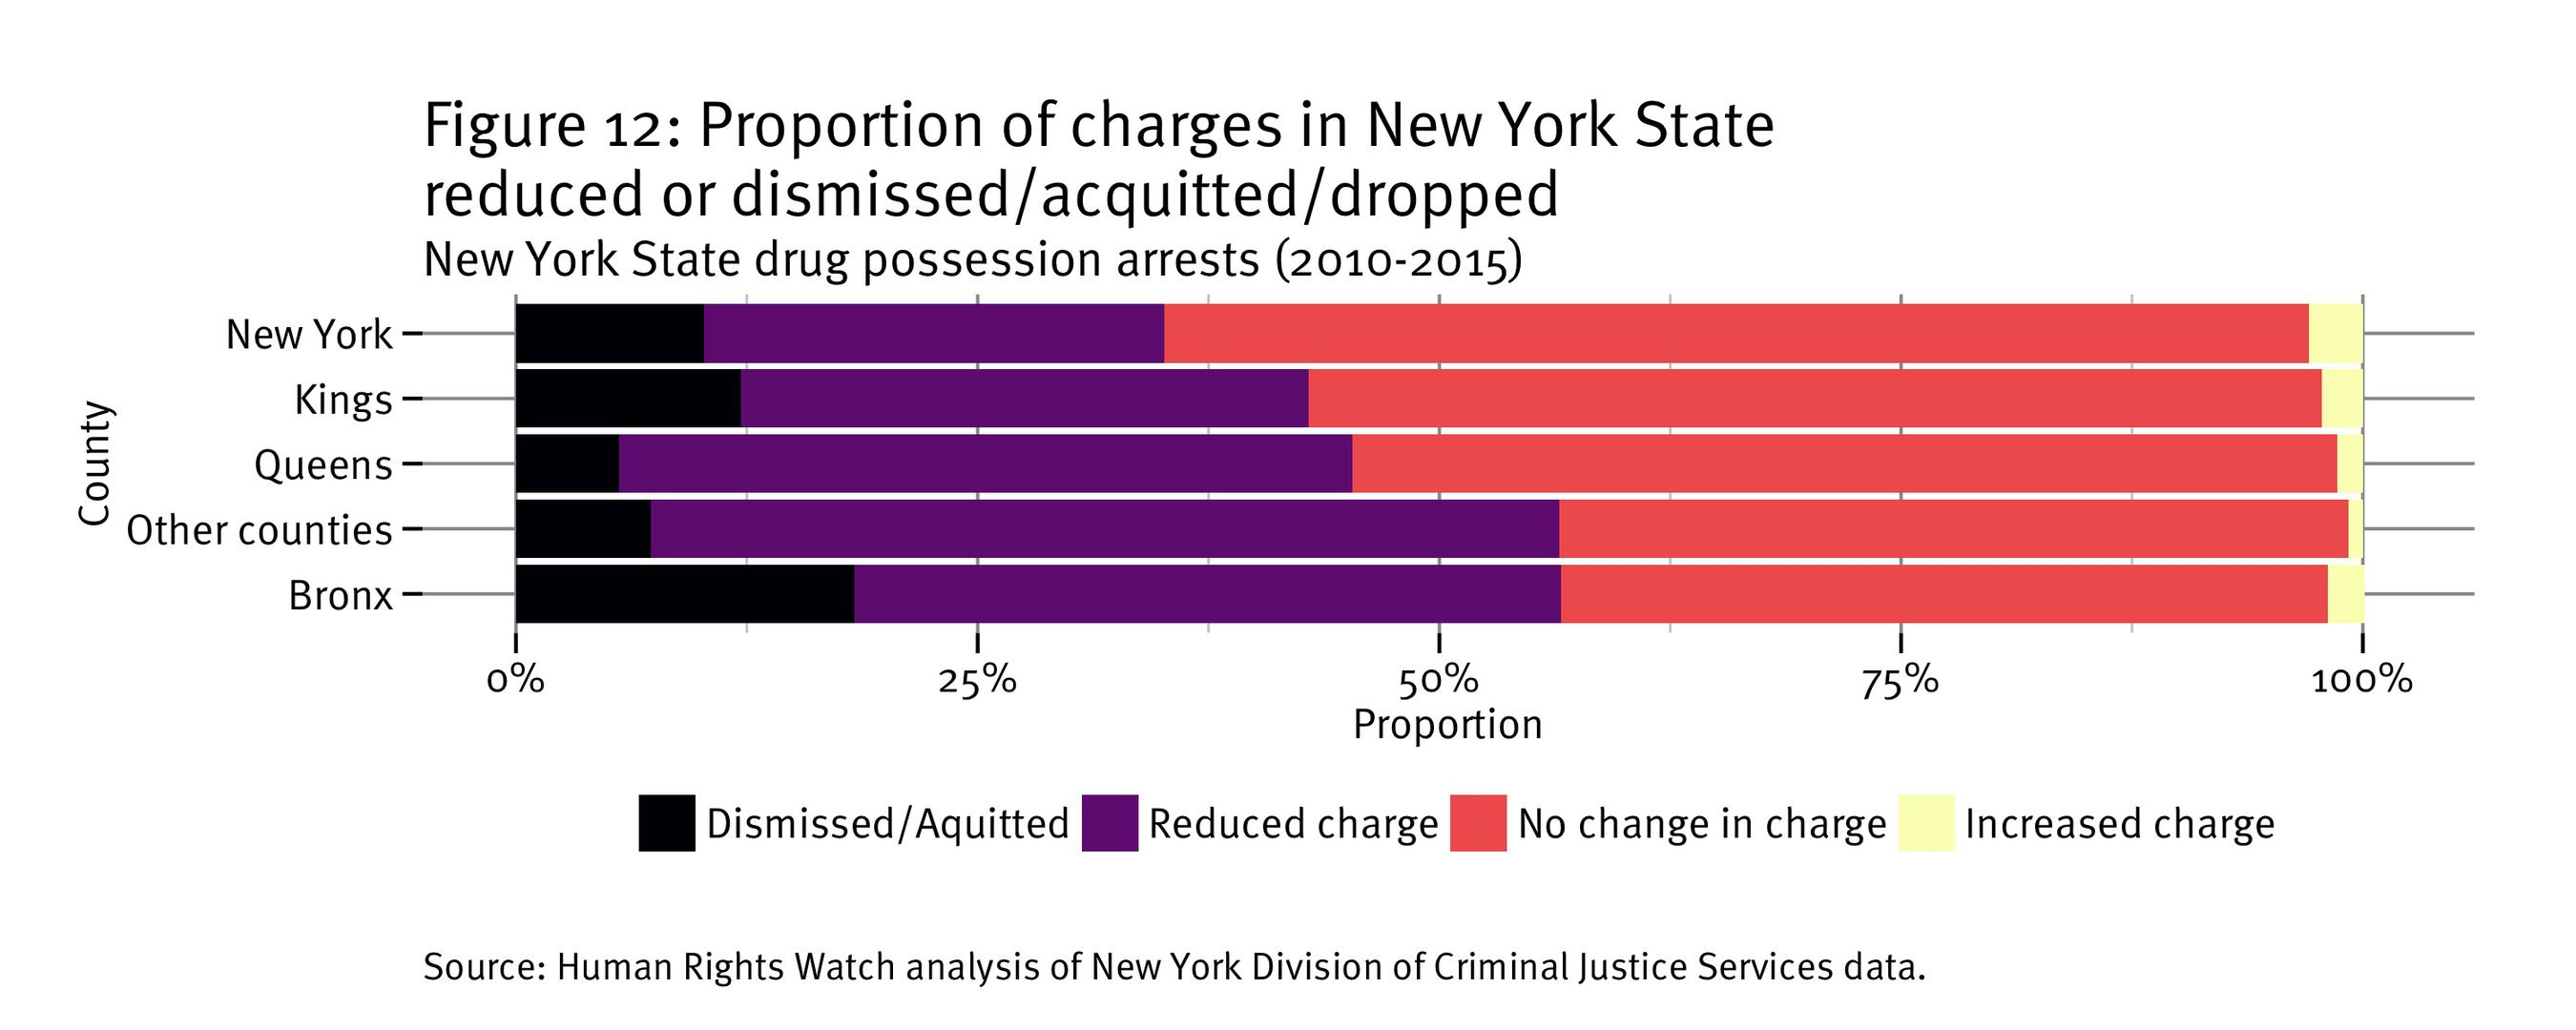 Figure 12: Percentage of drug possession charges in New York that are dropped/acquitted/dismissed